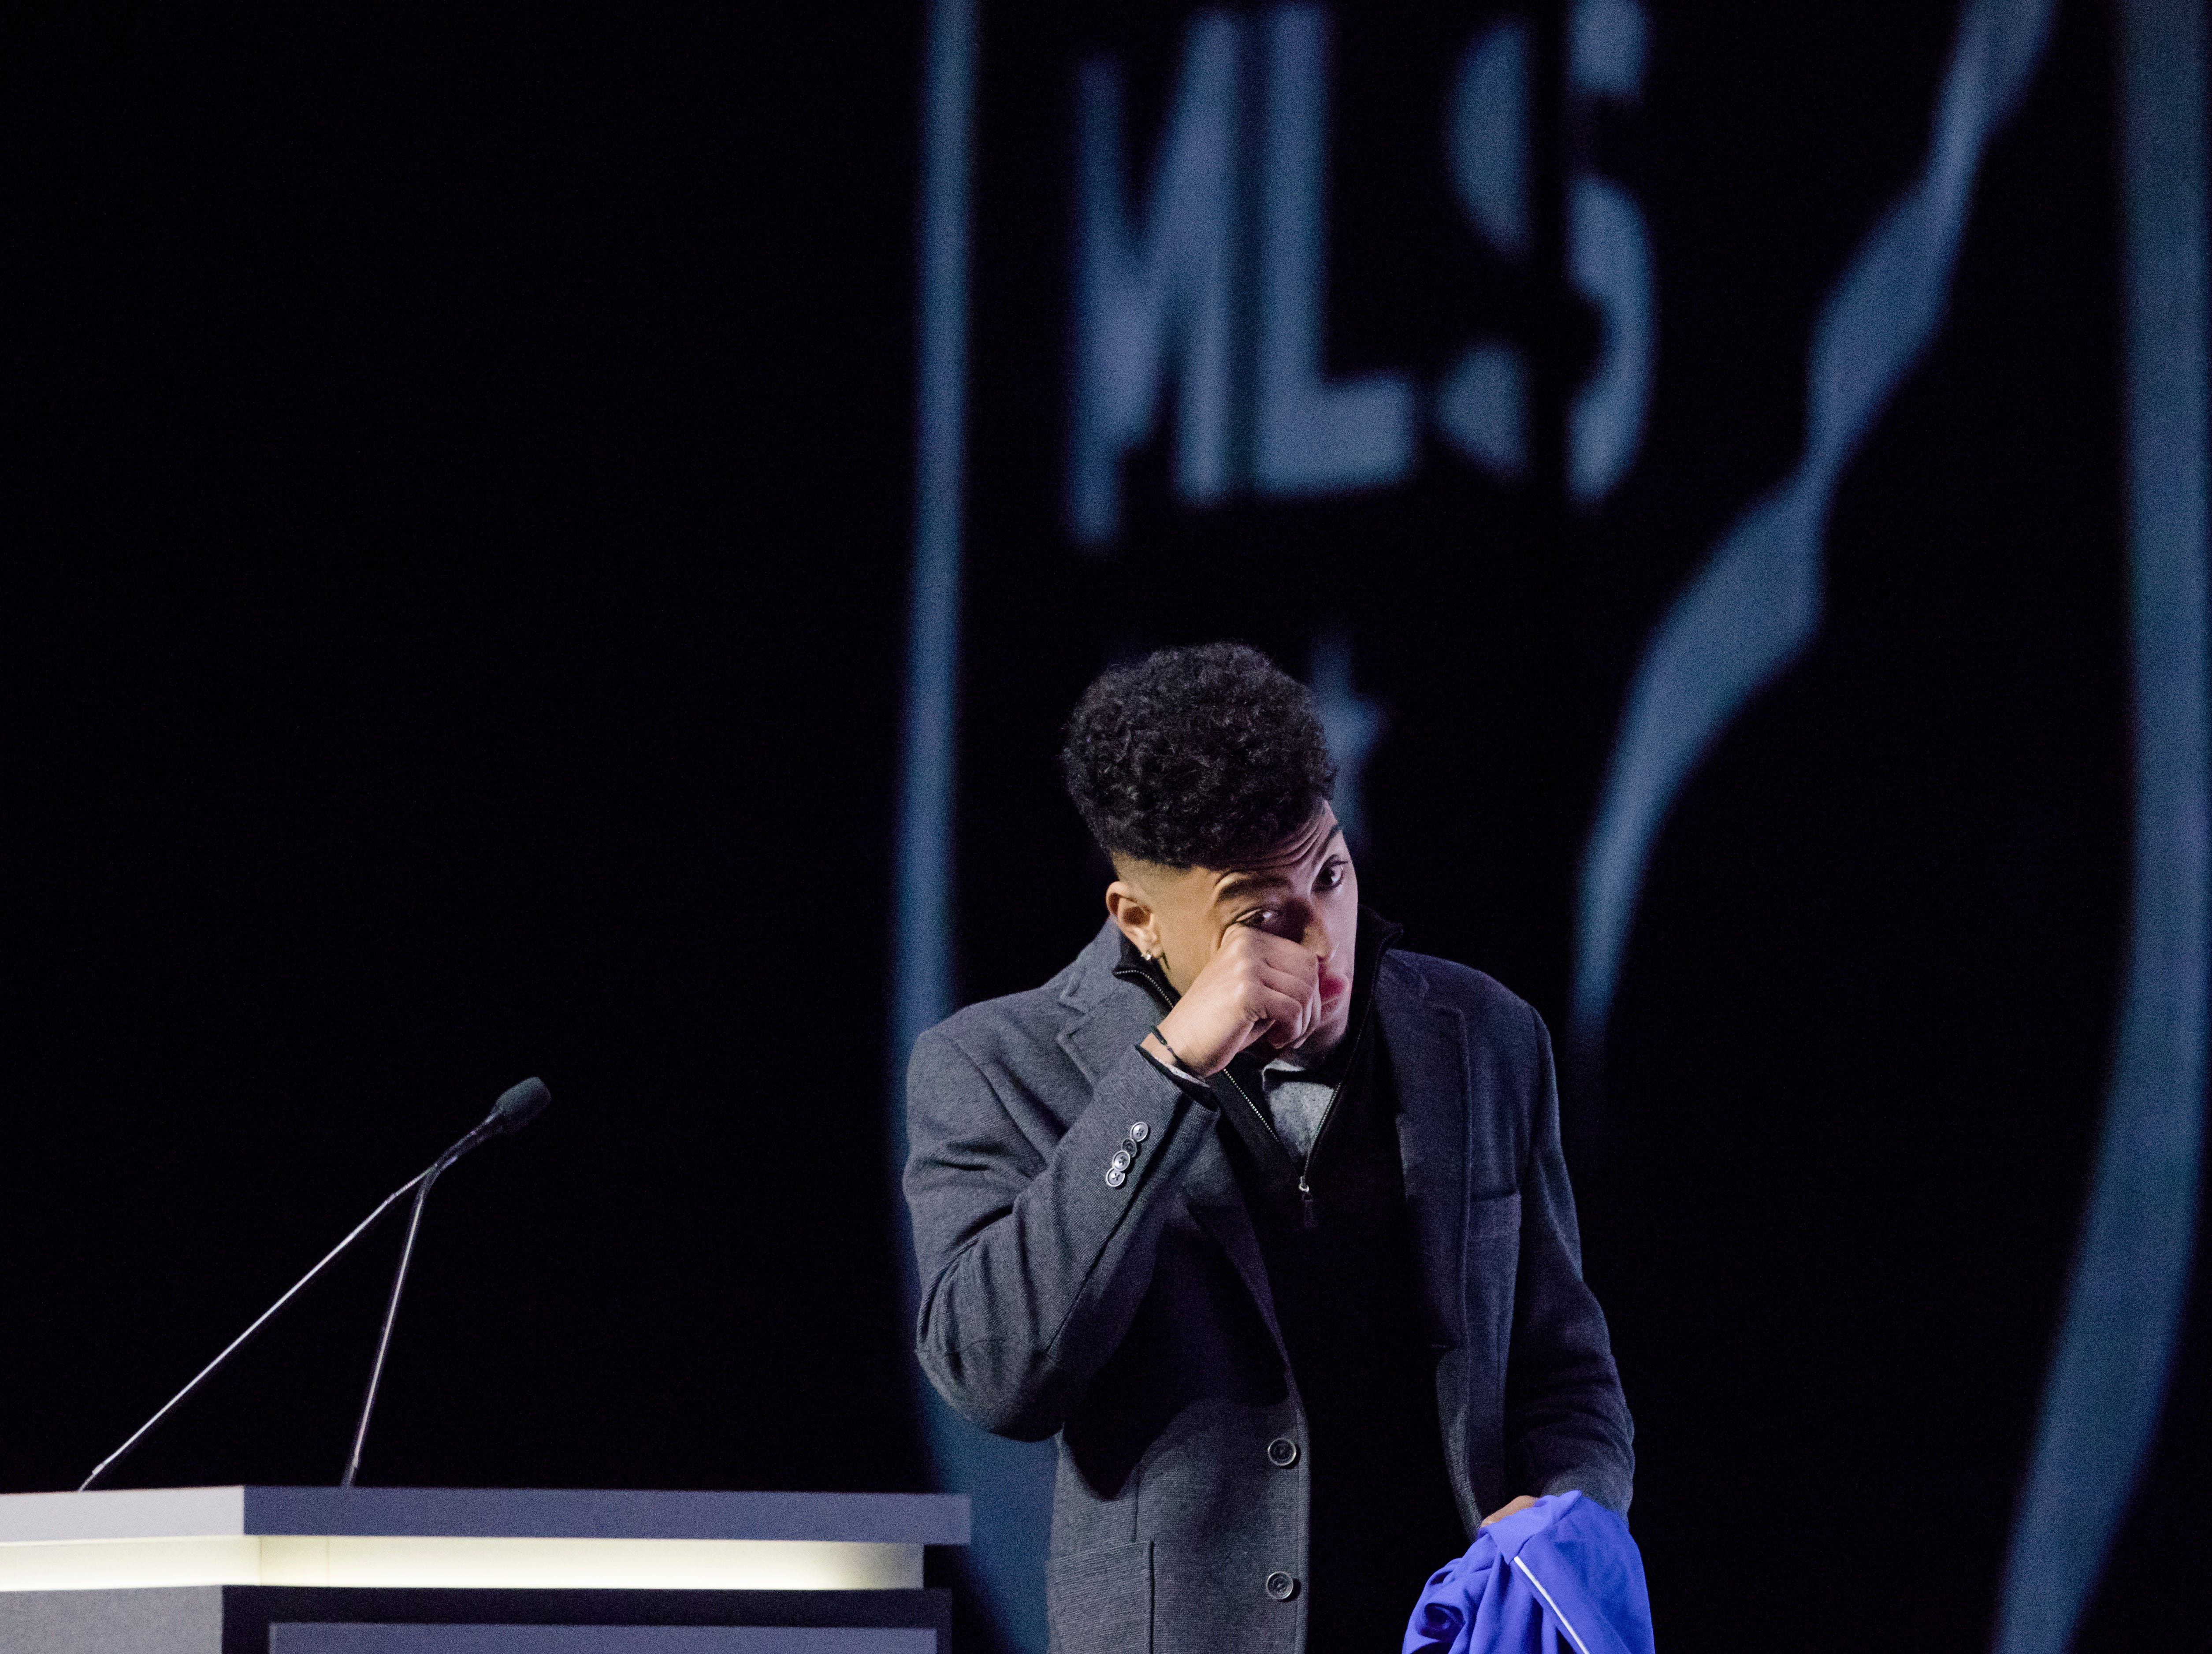 Logan Gdula reacts to being picked by FC Cincinnati as the 13th pick of the first round of the MLS Superdraft on Friday, Jan. 11, 2019 in Chicago, Illinois.